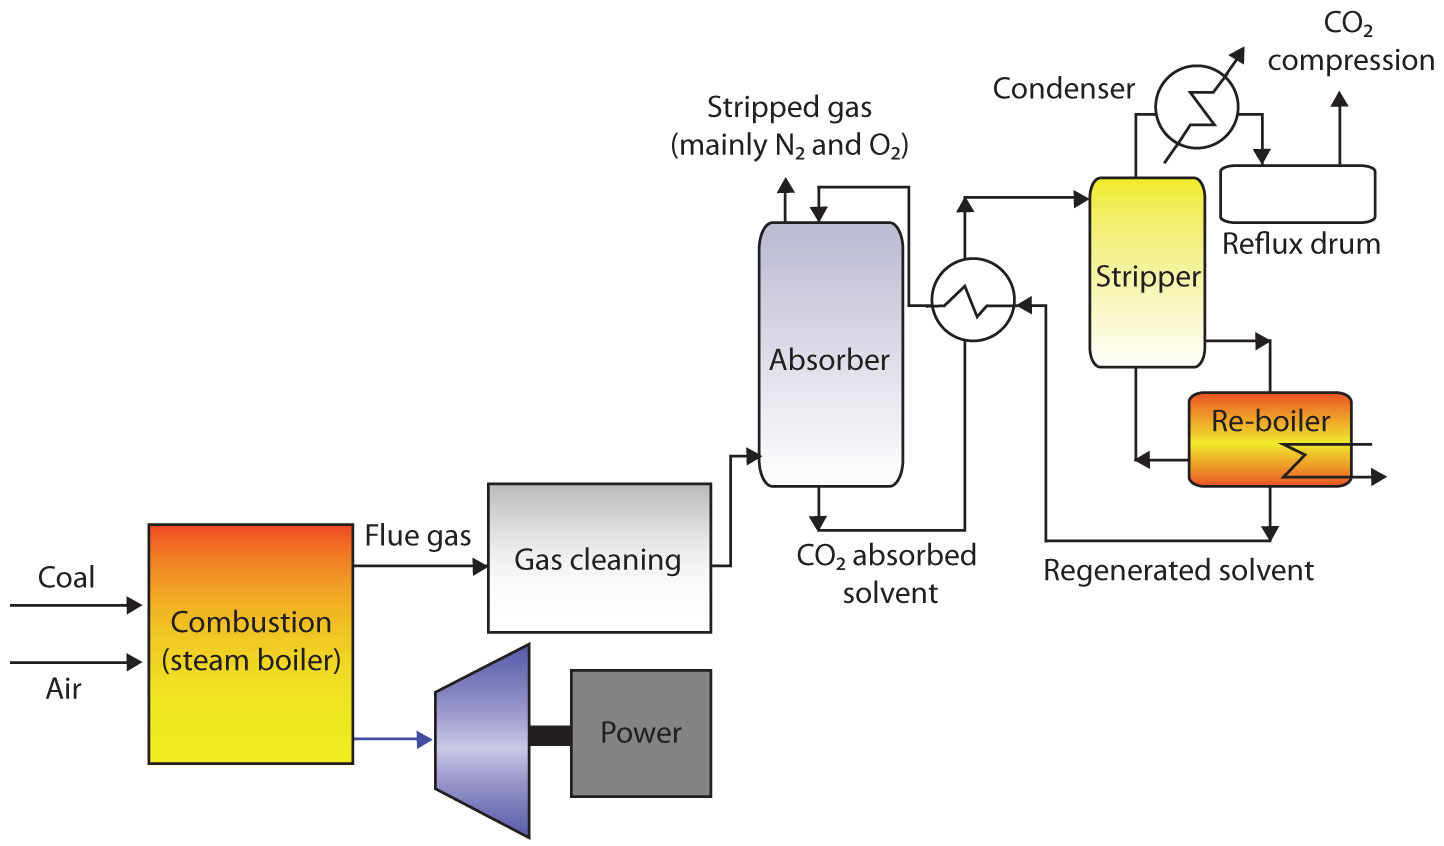 hight resolution of for electric power generation there are essentially three pathways for co2 capture they are